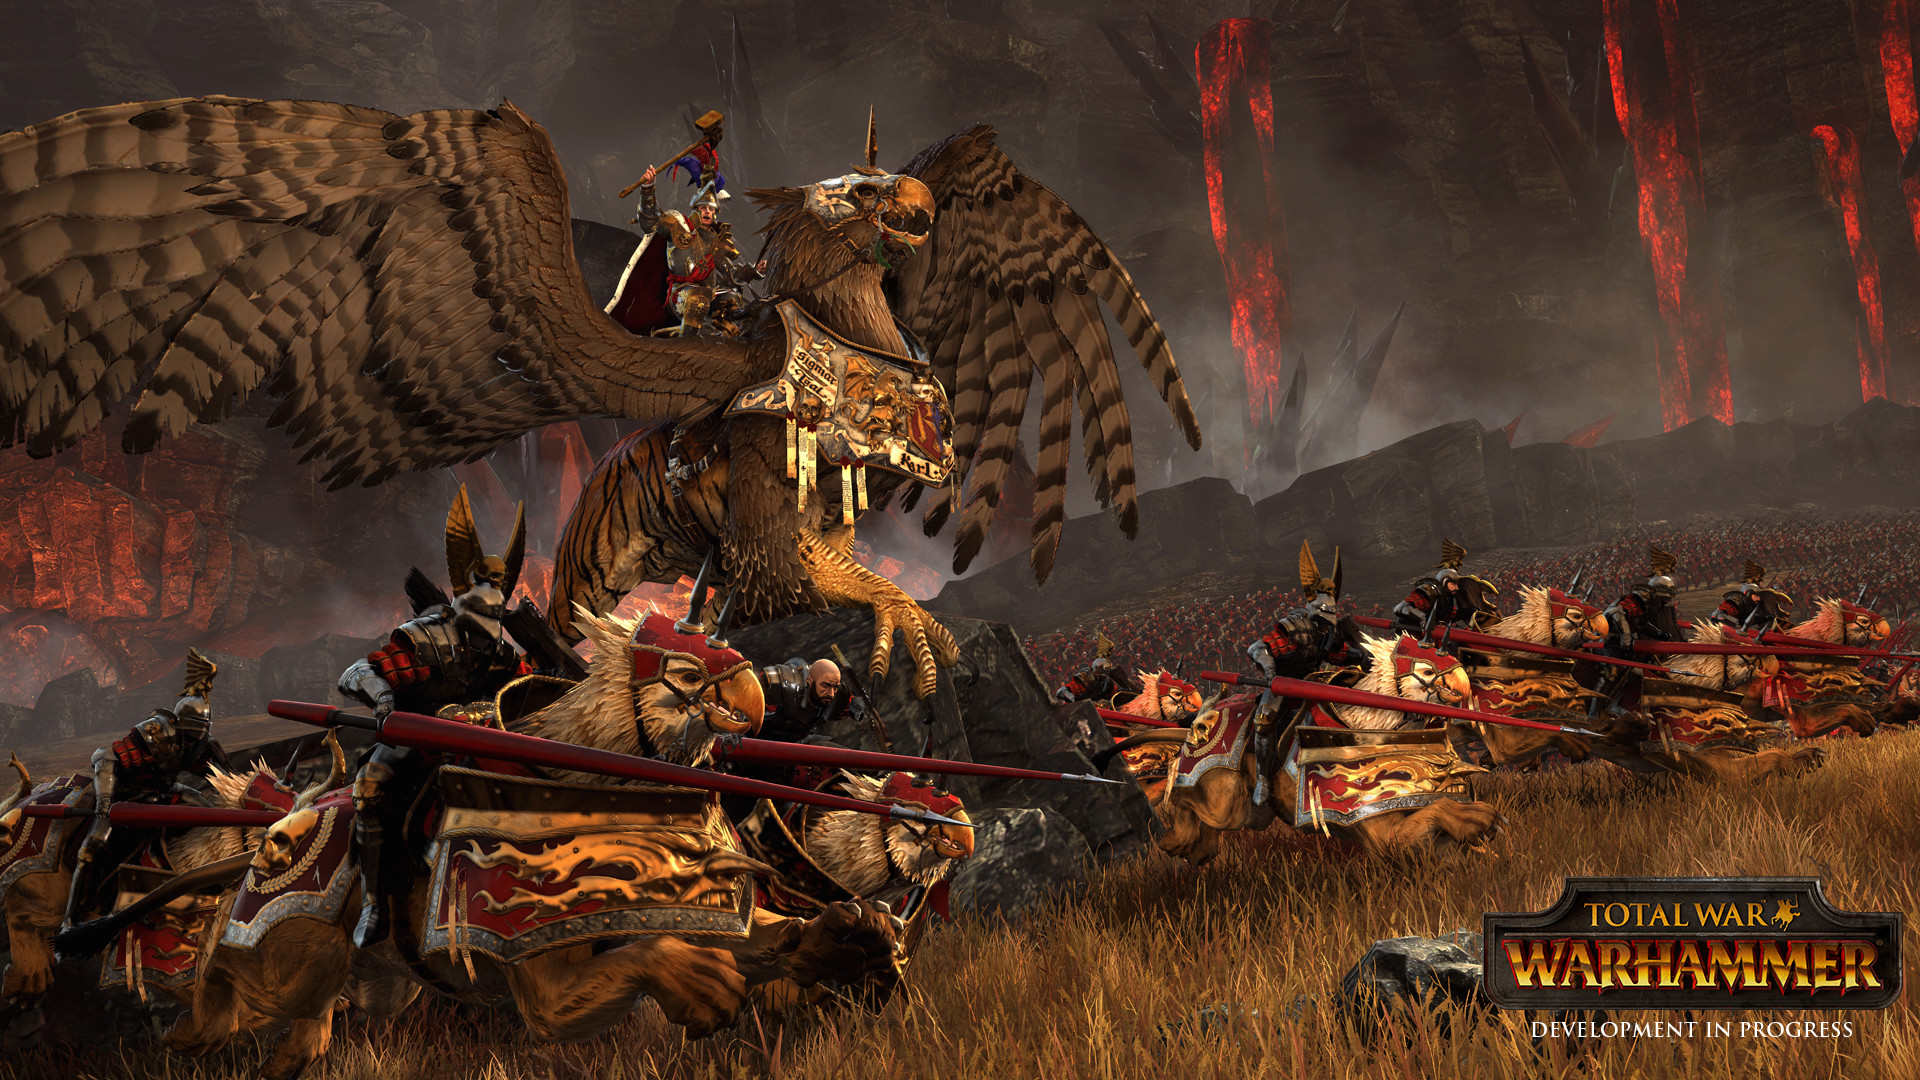 Total War: Warhammer [Update 2 + 3 DLC] (2016) PC | RePack от NemreT - Скриншот 3